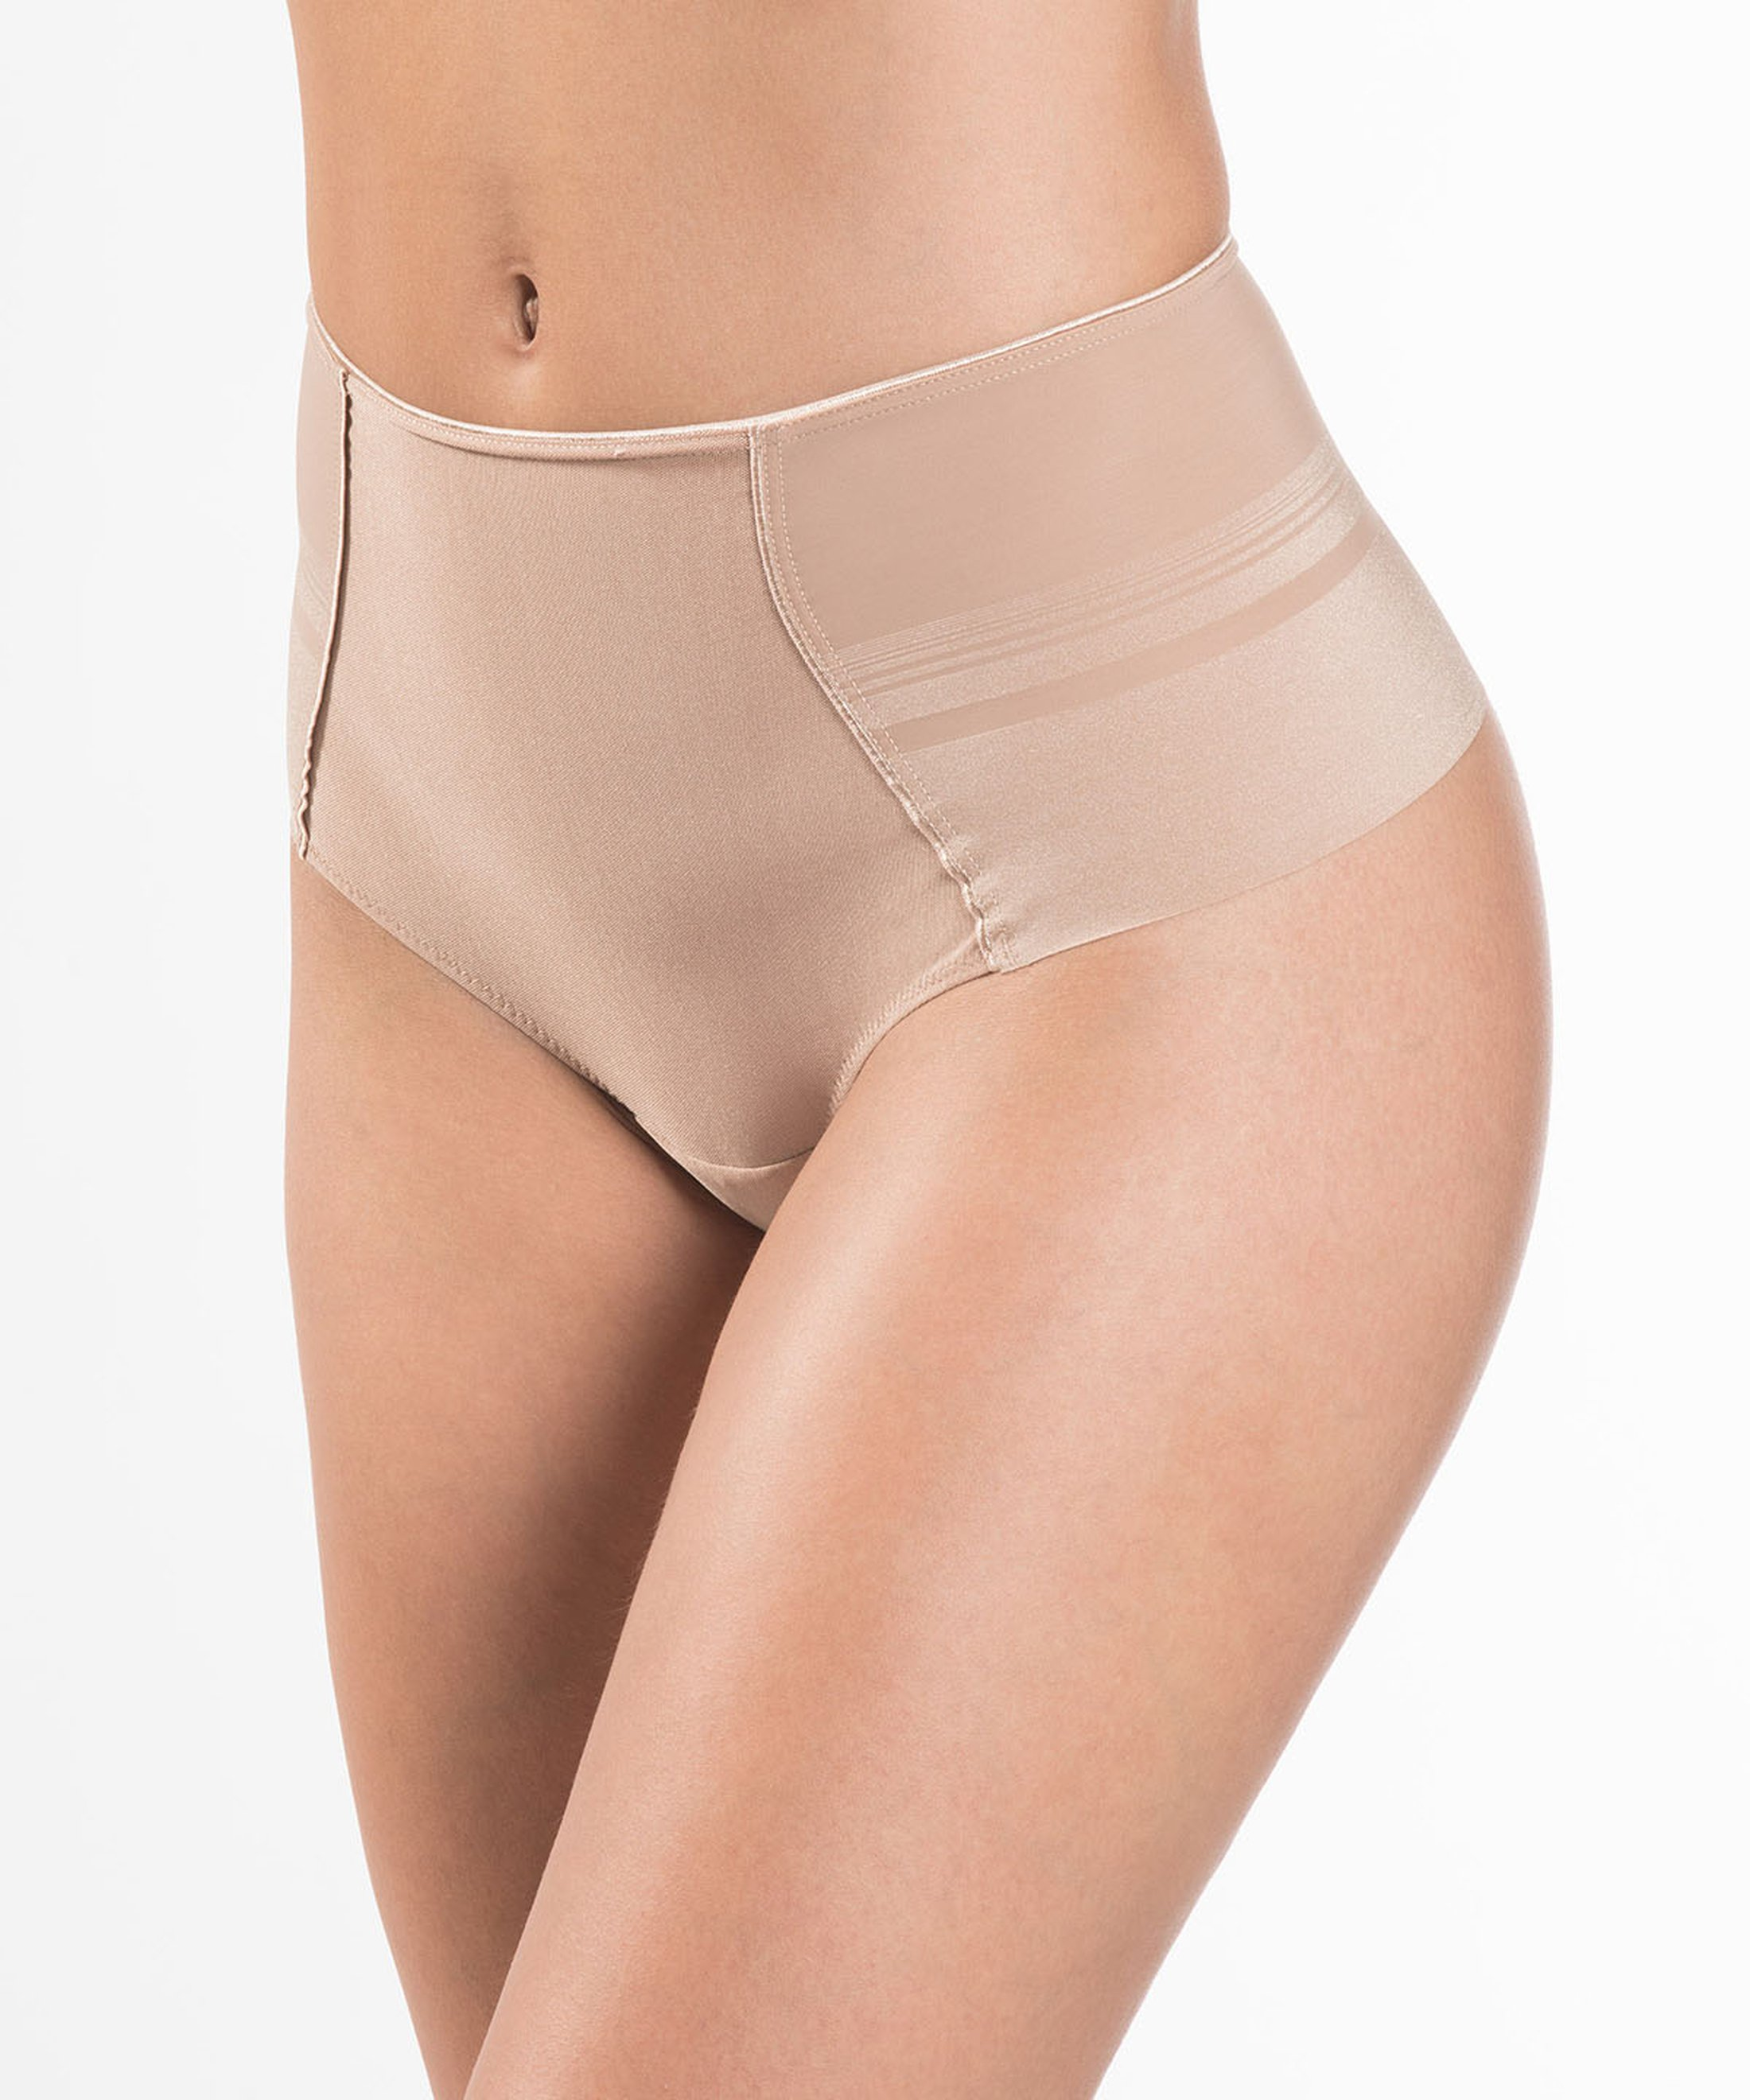 BEAUTY SCULPT Sculpting Hot Tanga Rafia | Aubade